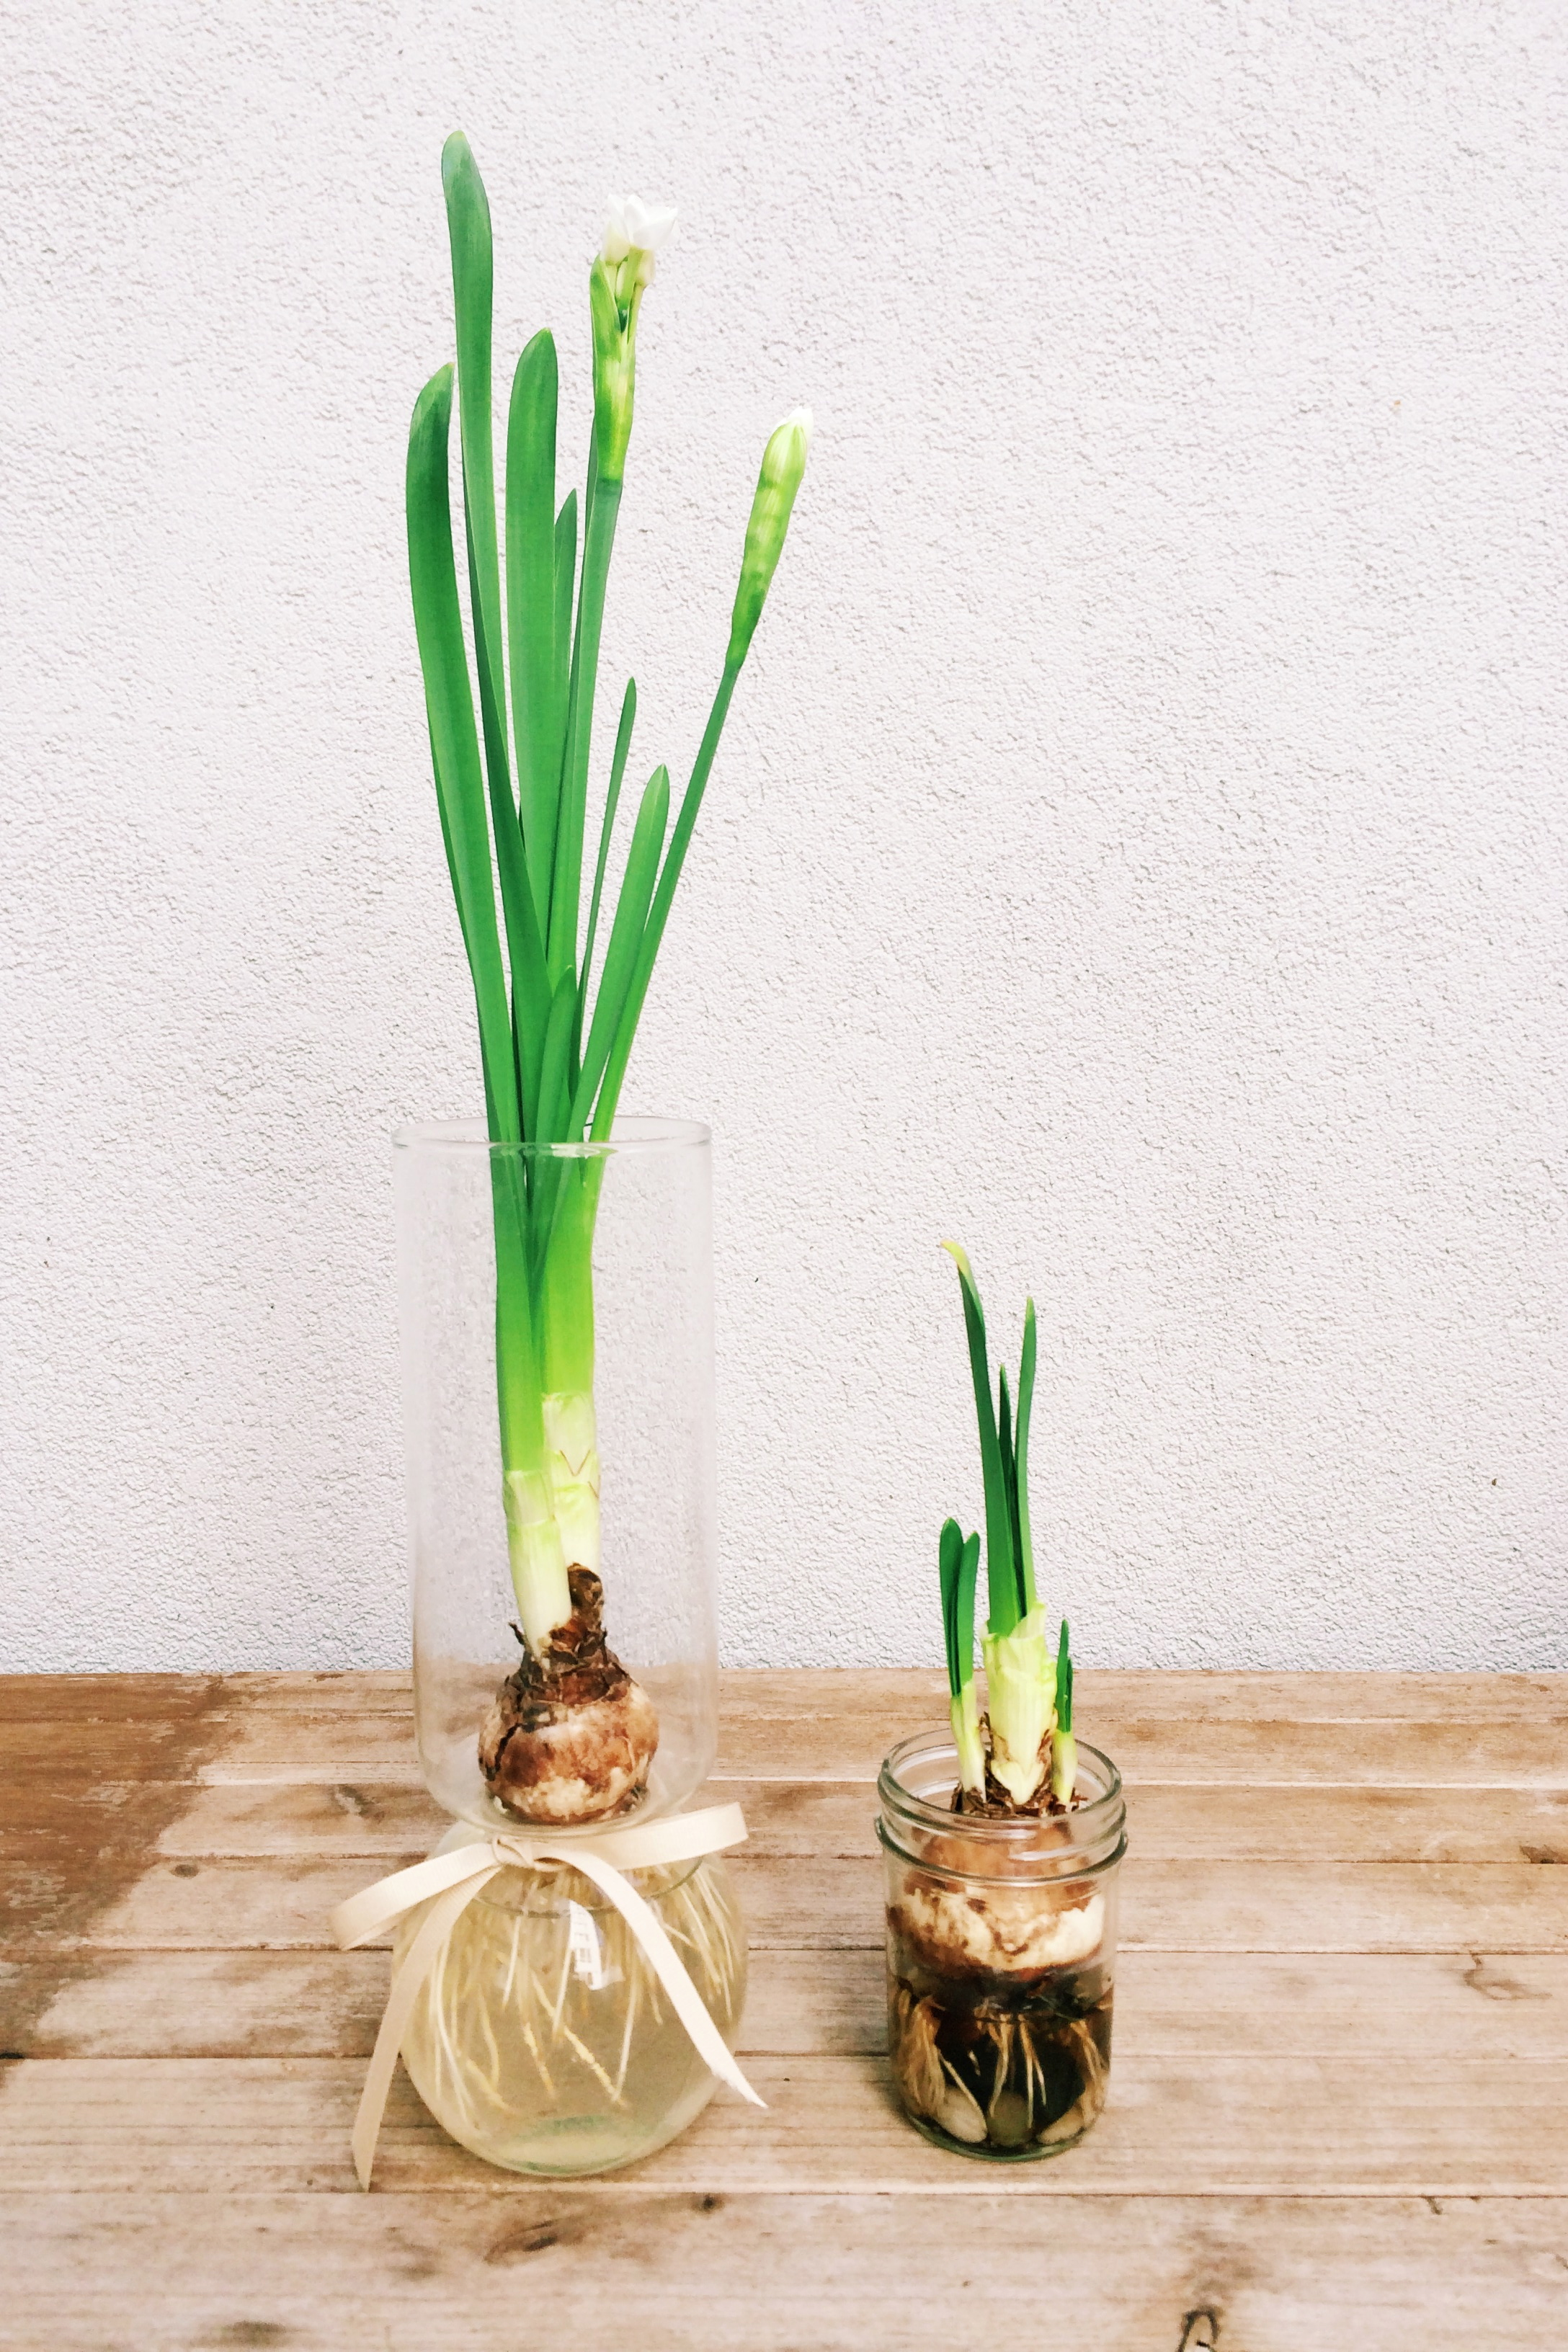 the bulb on the left was started about four weeks ago, and the one on the right just about a week ago.